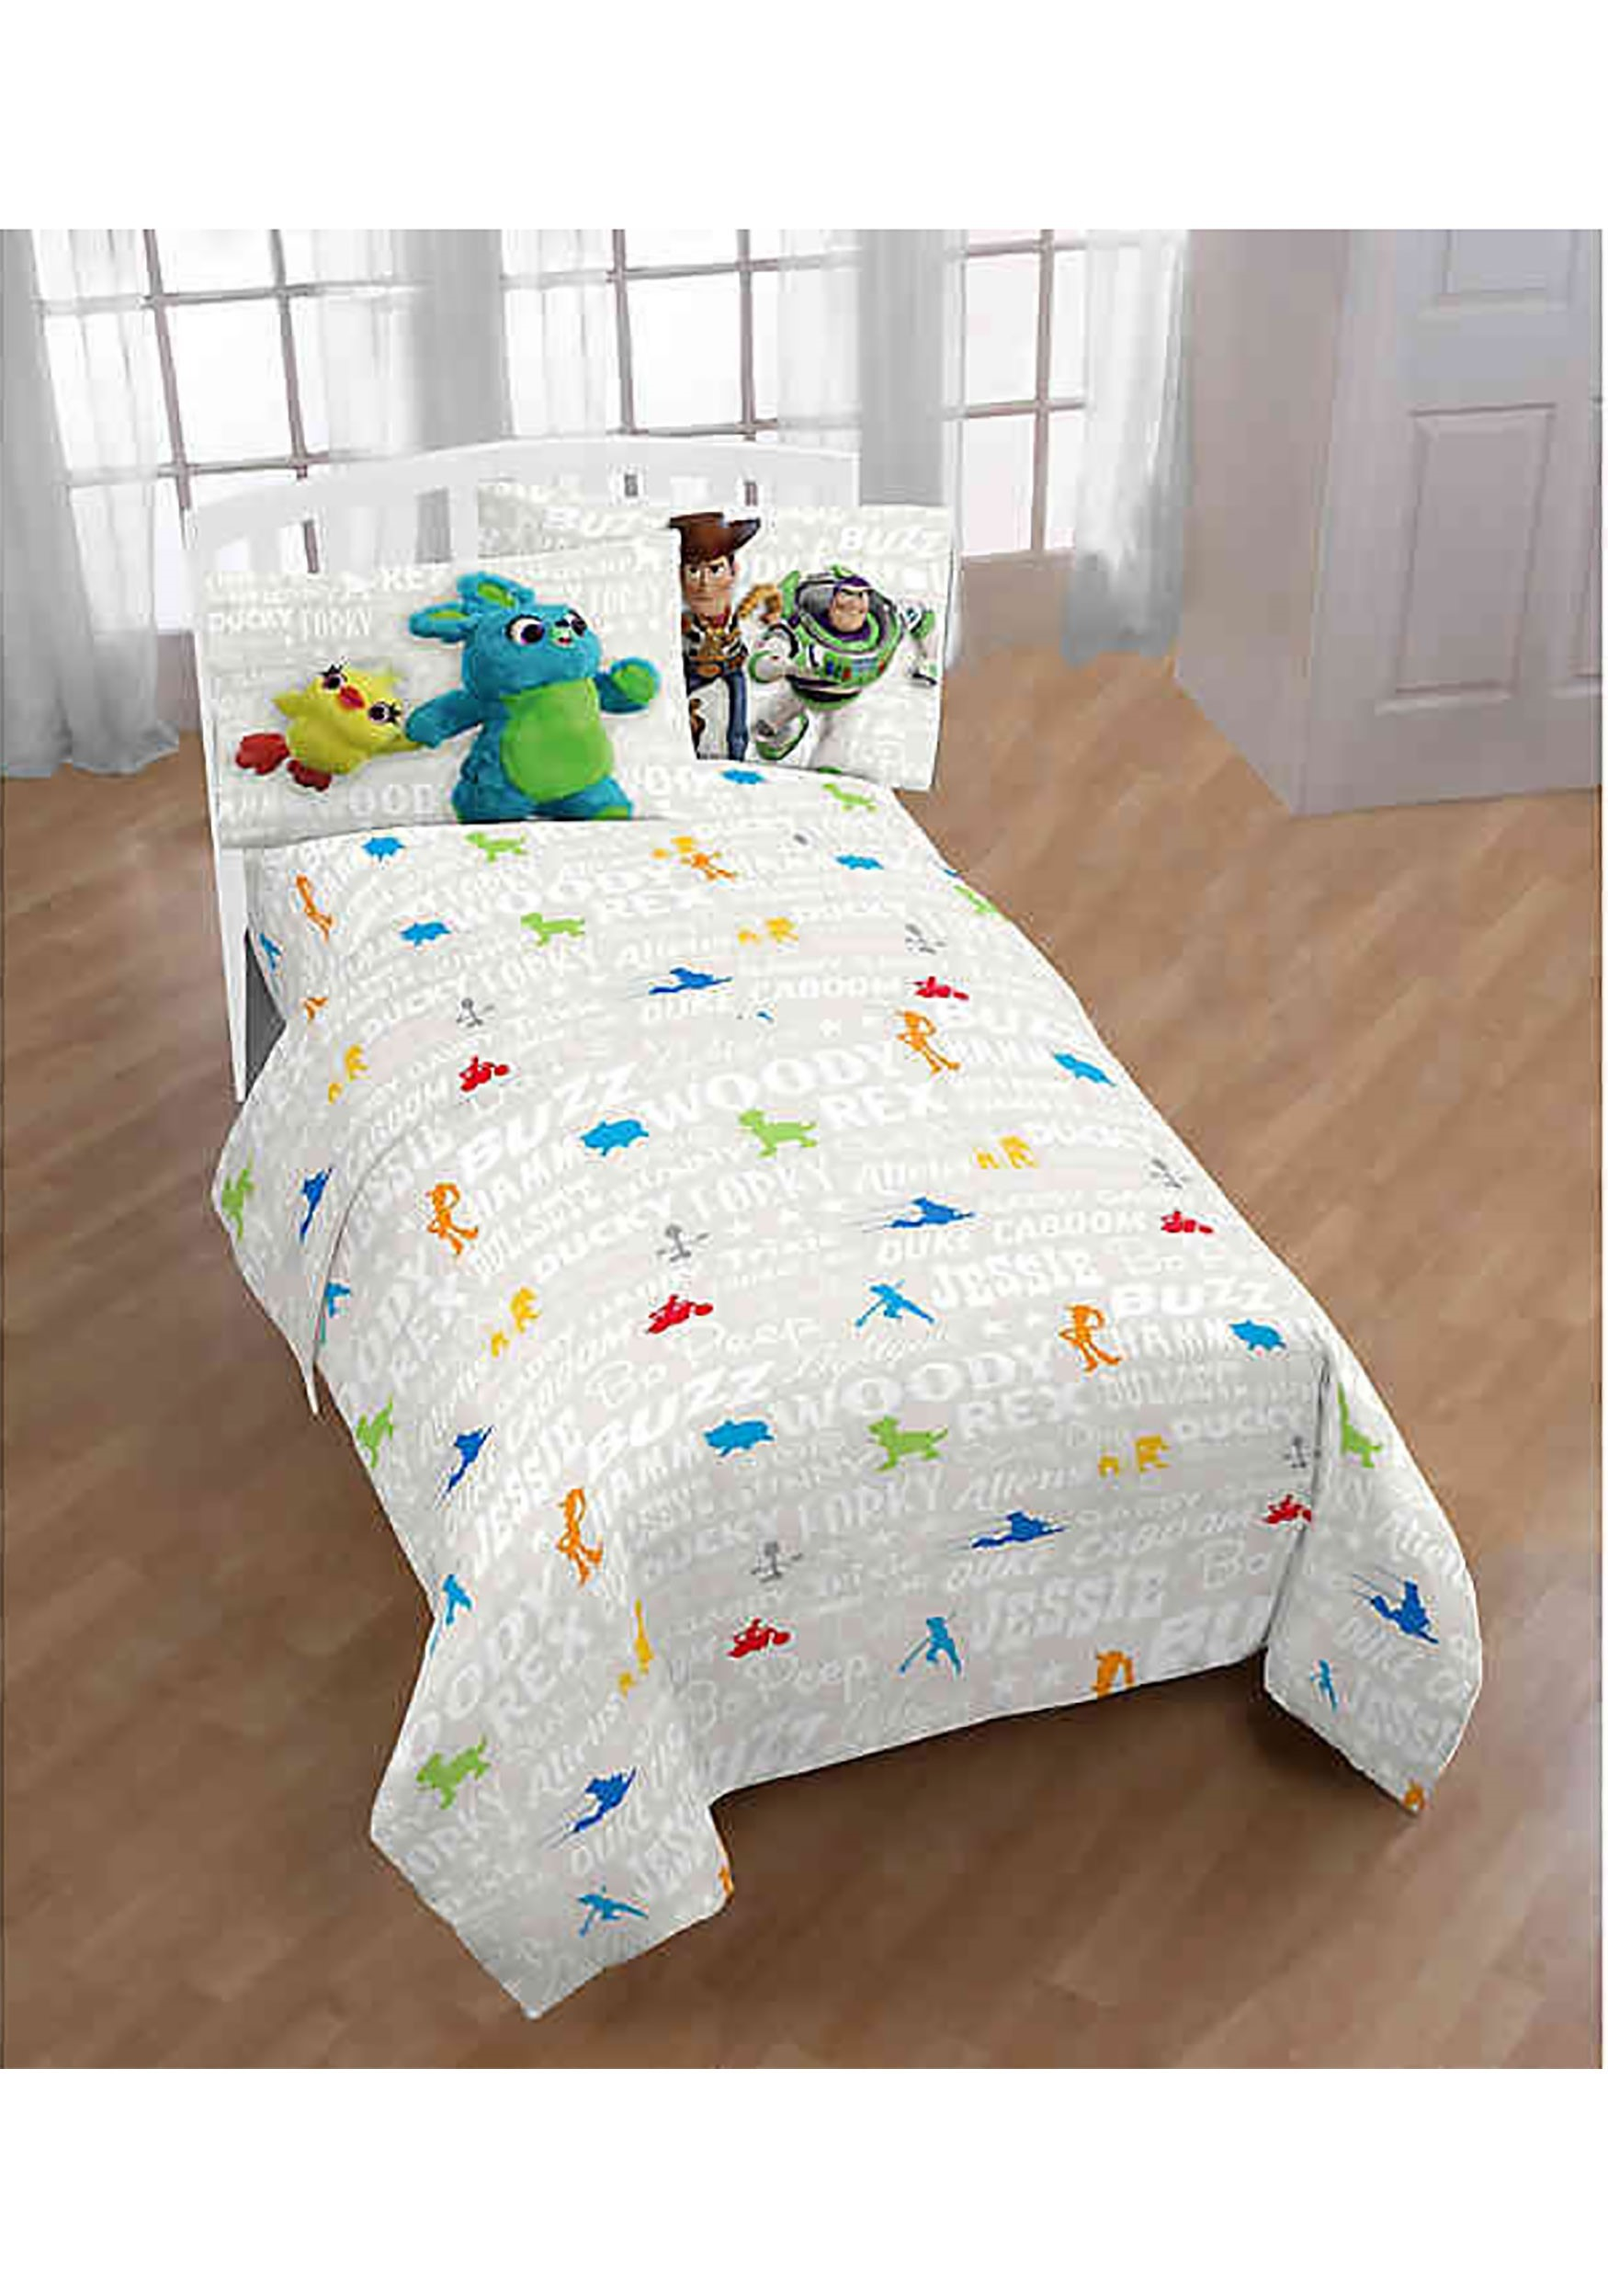 Twin Bed Bedding Sets.Toy Story 4 Twin Bed Set